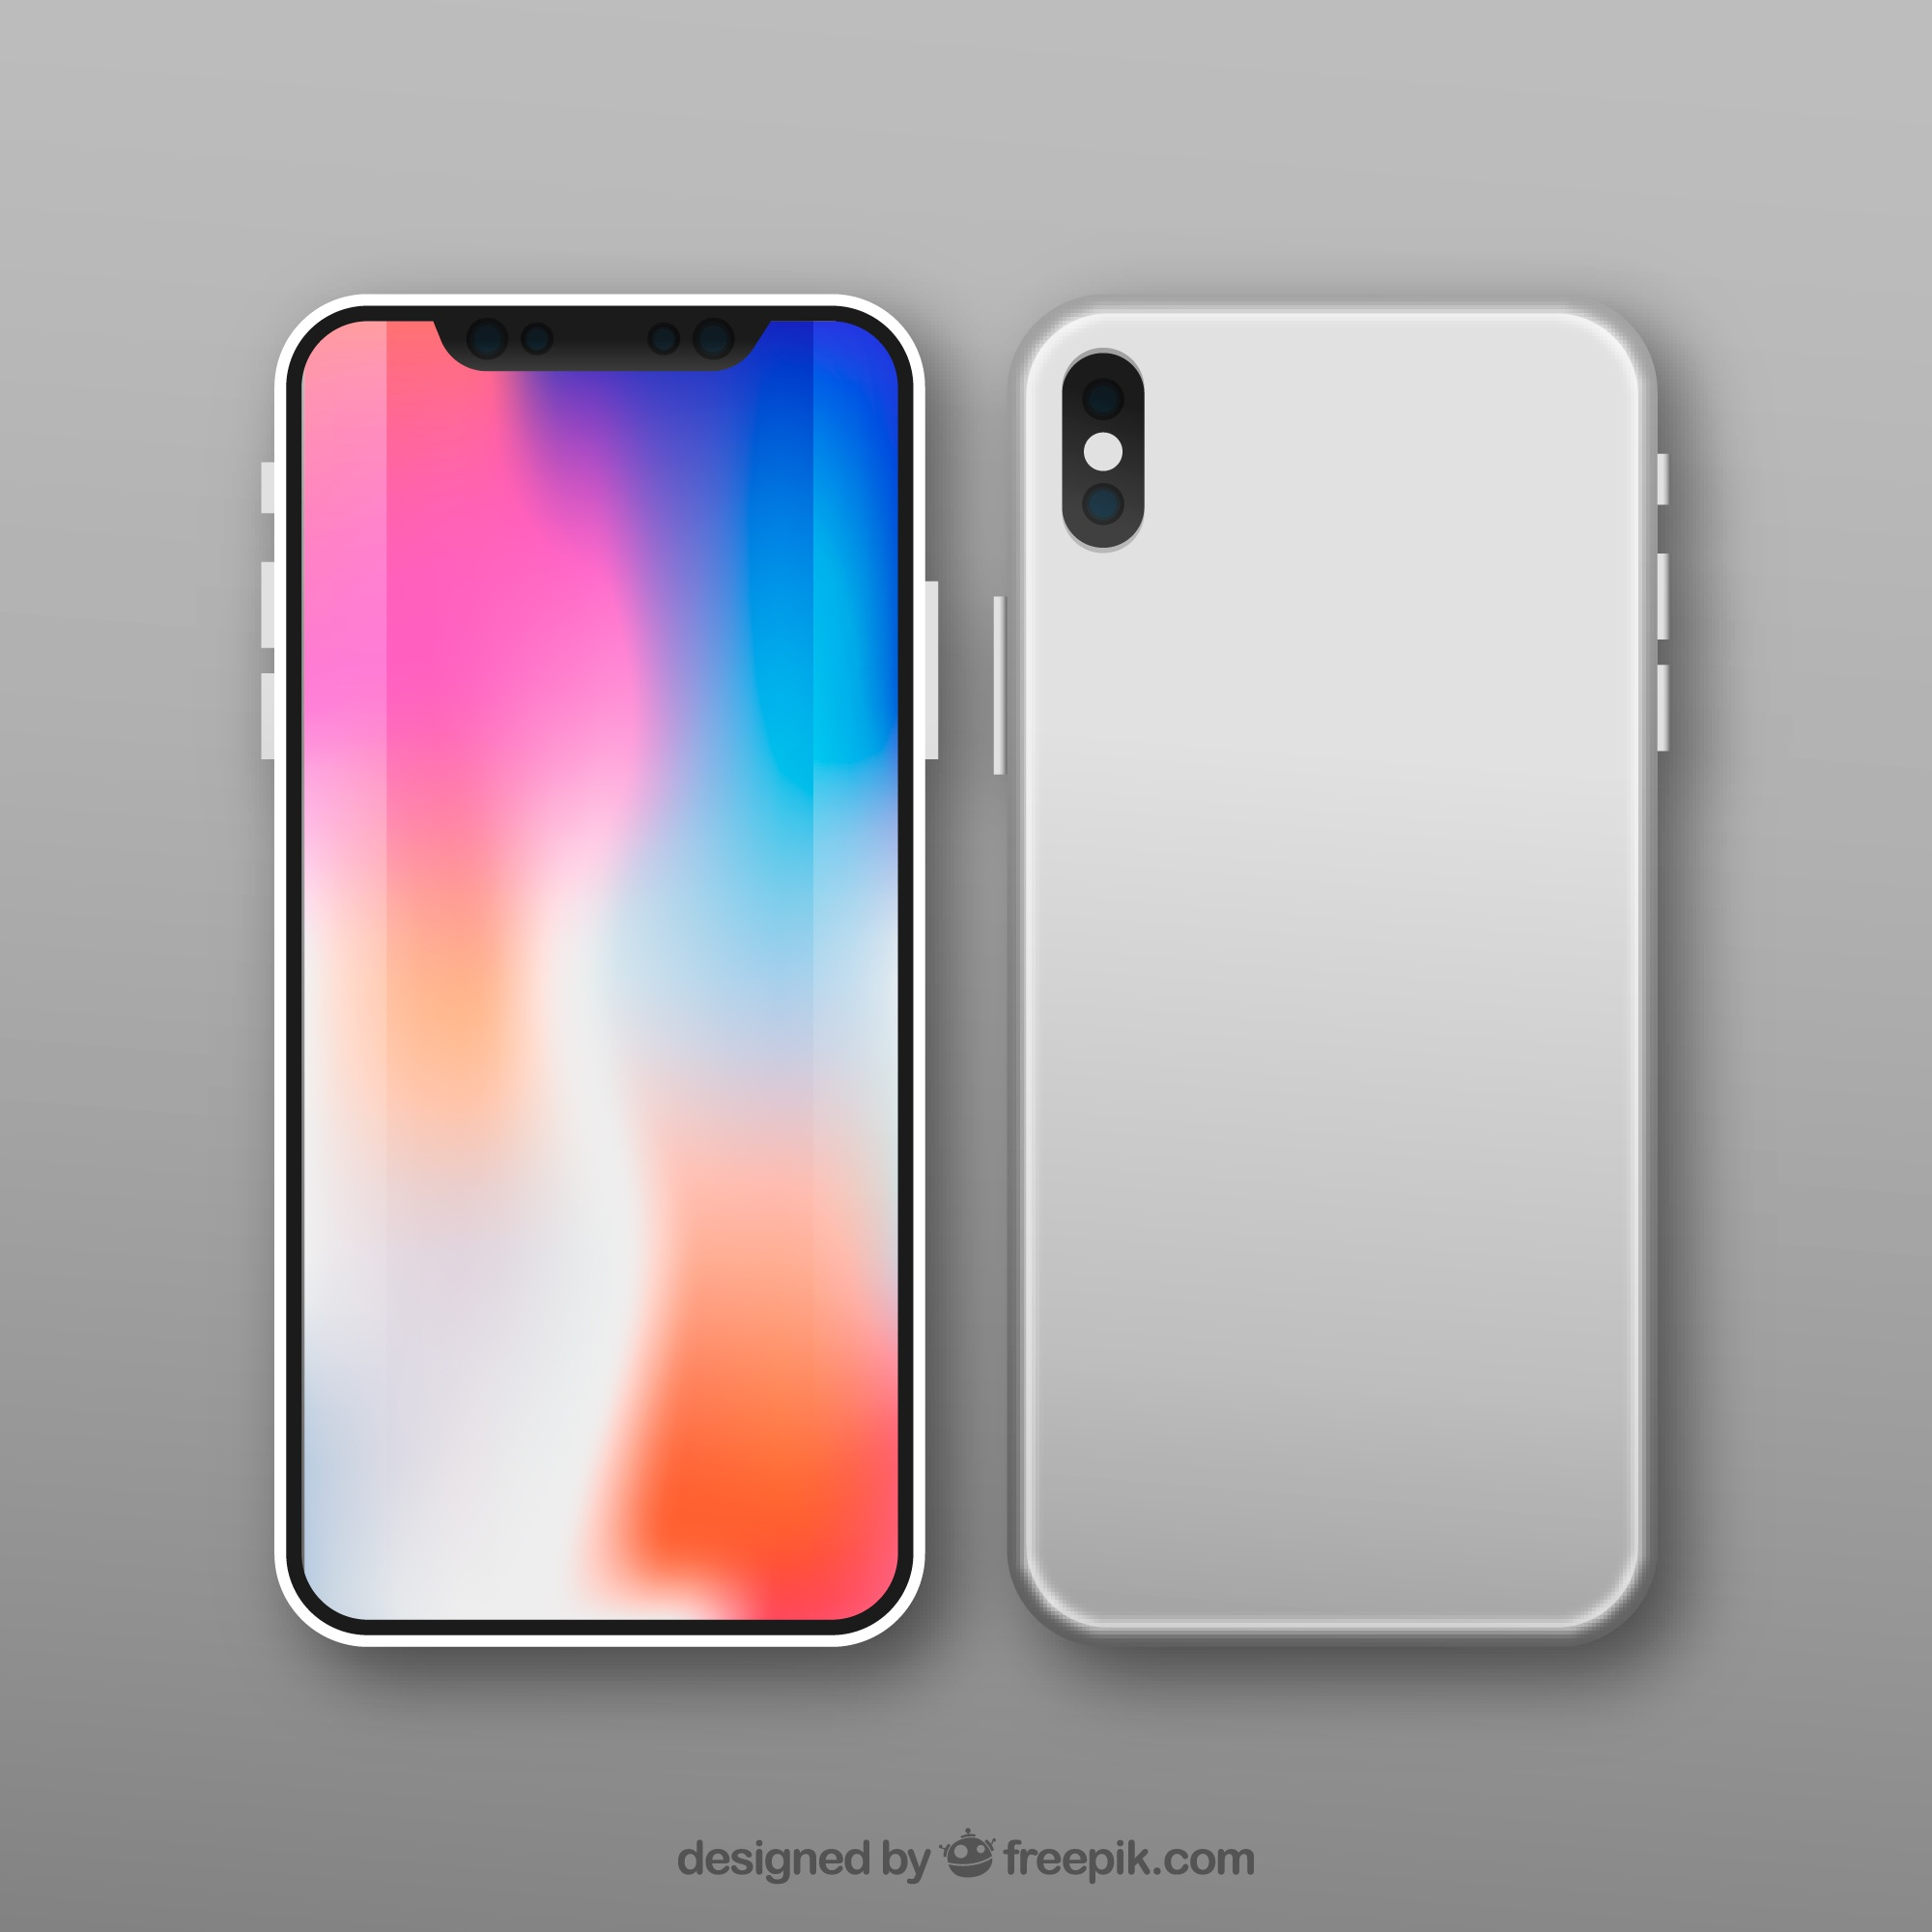 Modern smartphone design with colorful screen